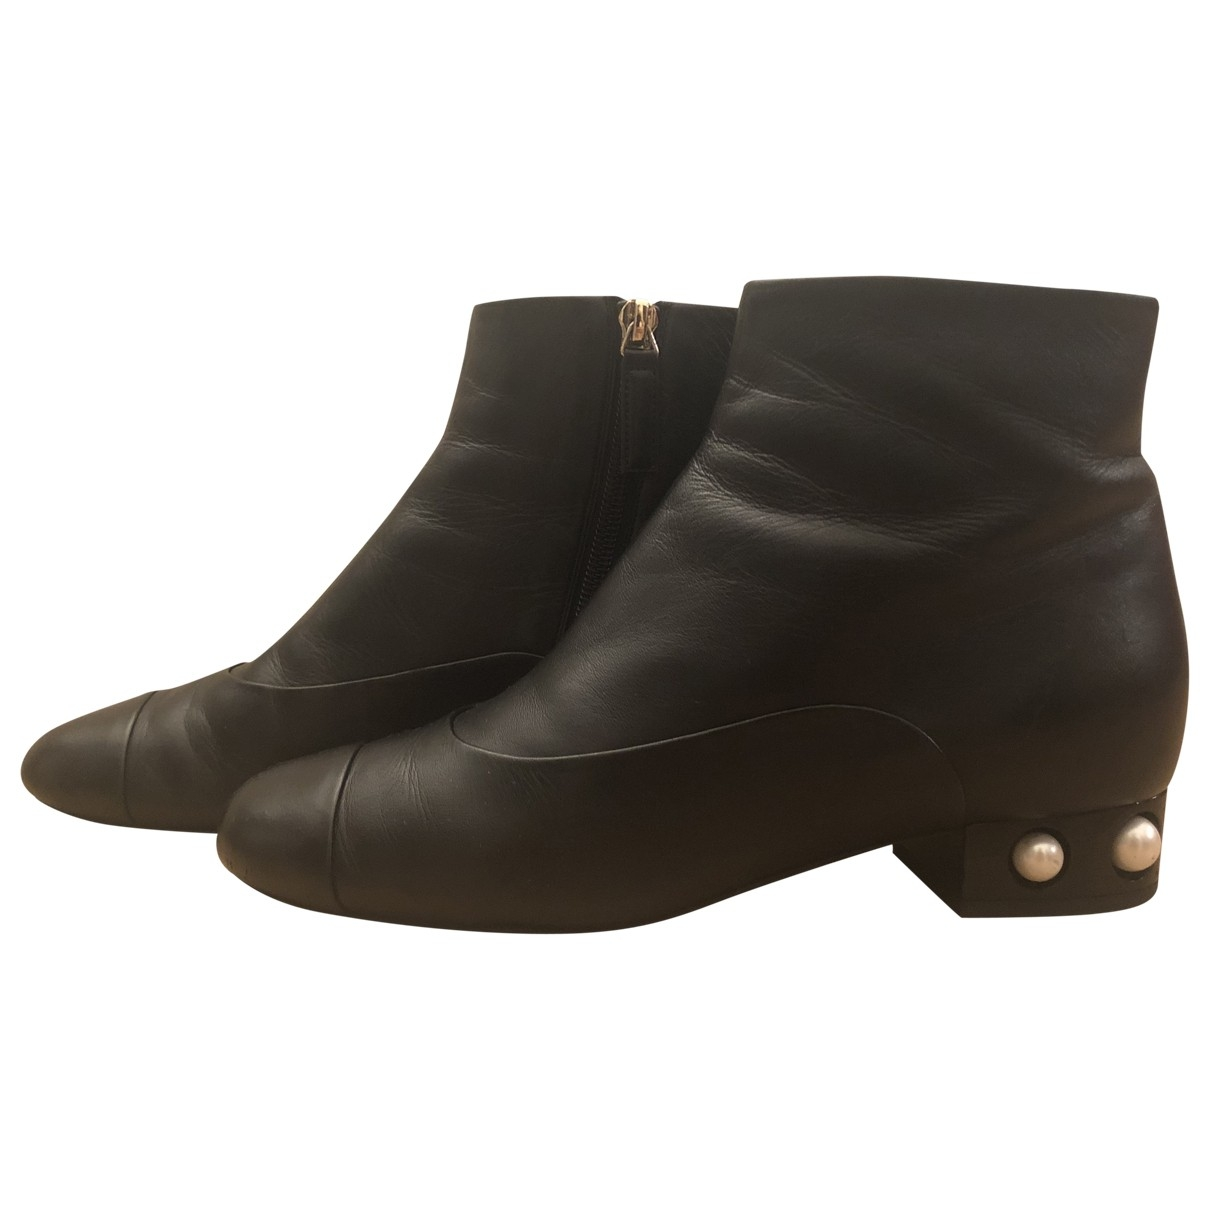 Chanel \N Black Leather Ankle boots for Women 37 EU